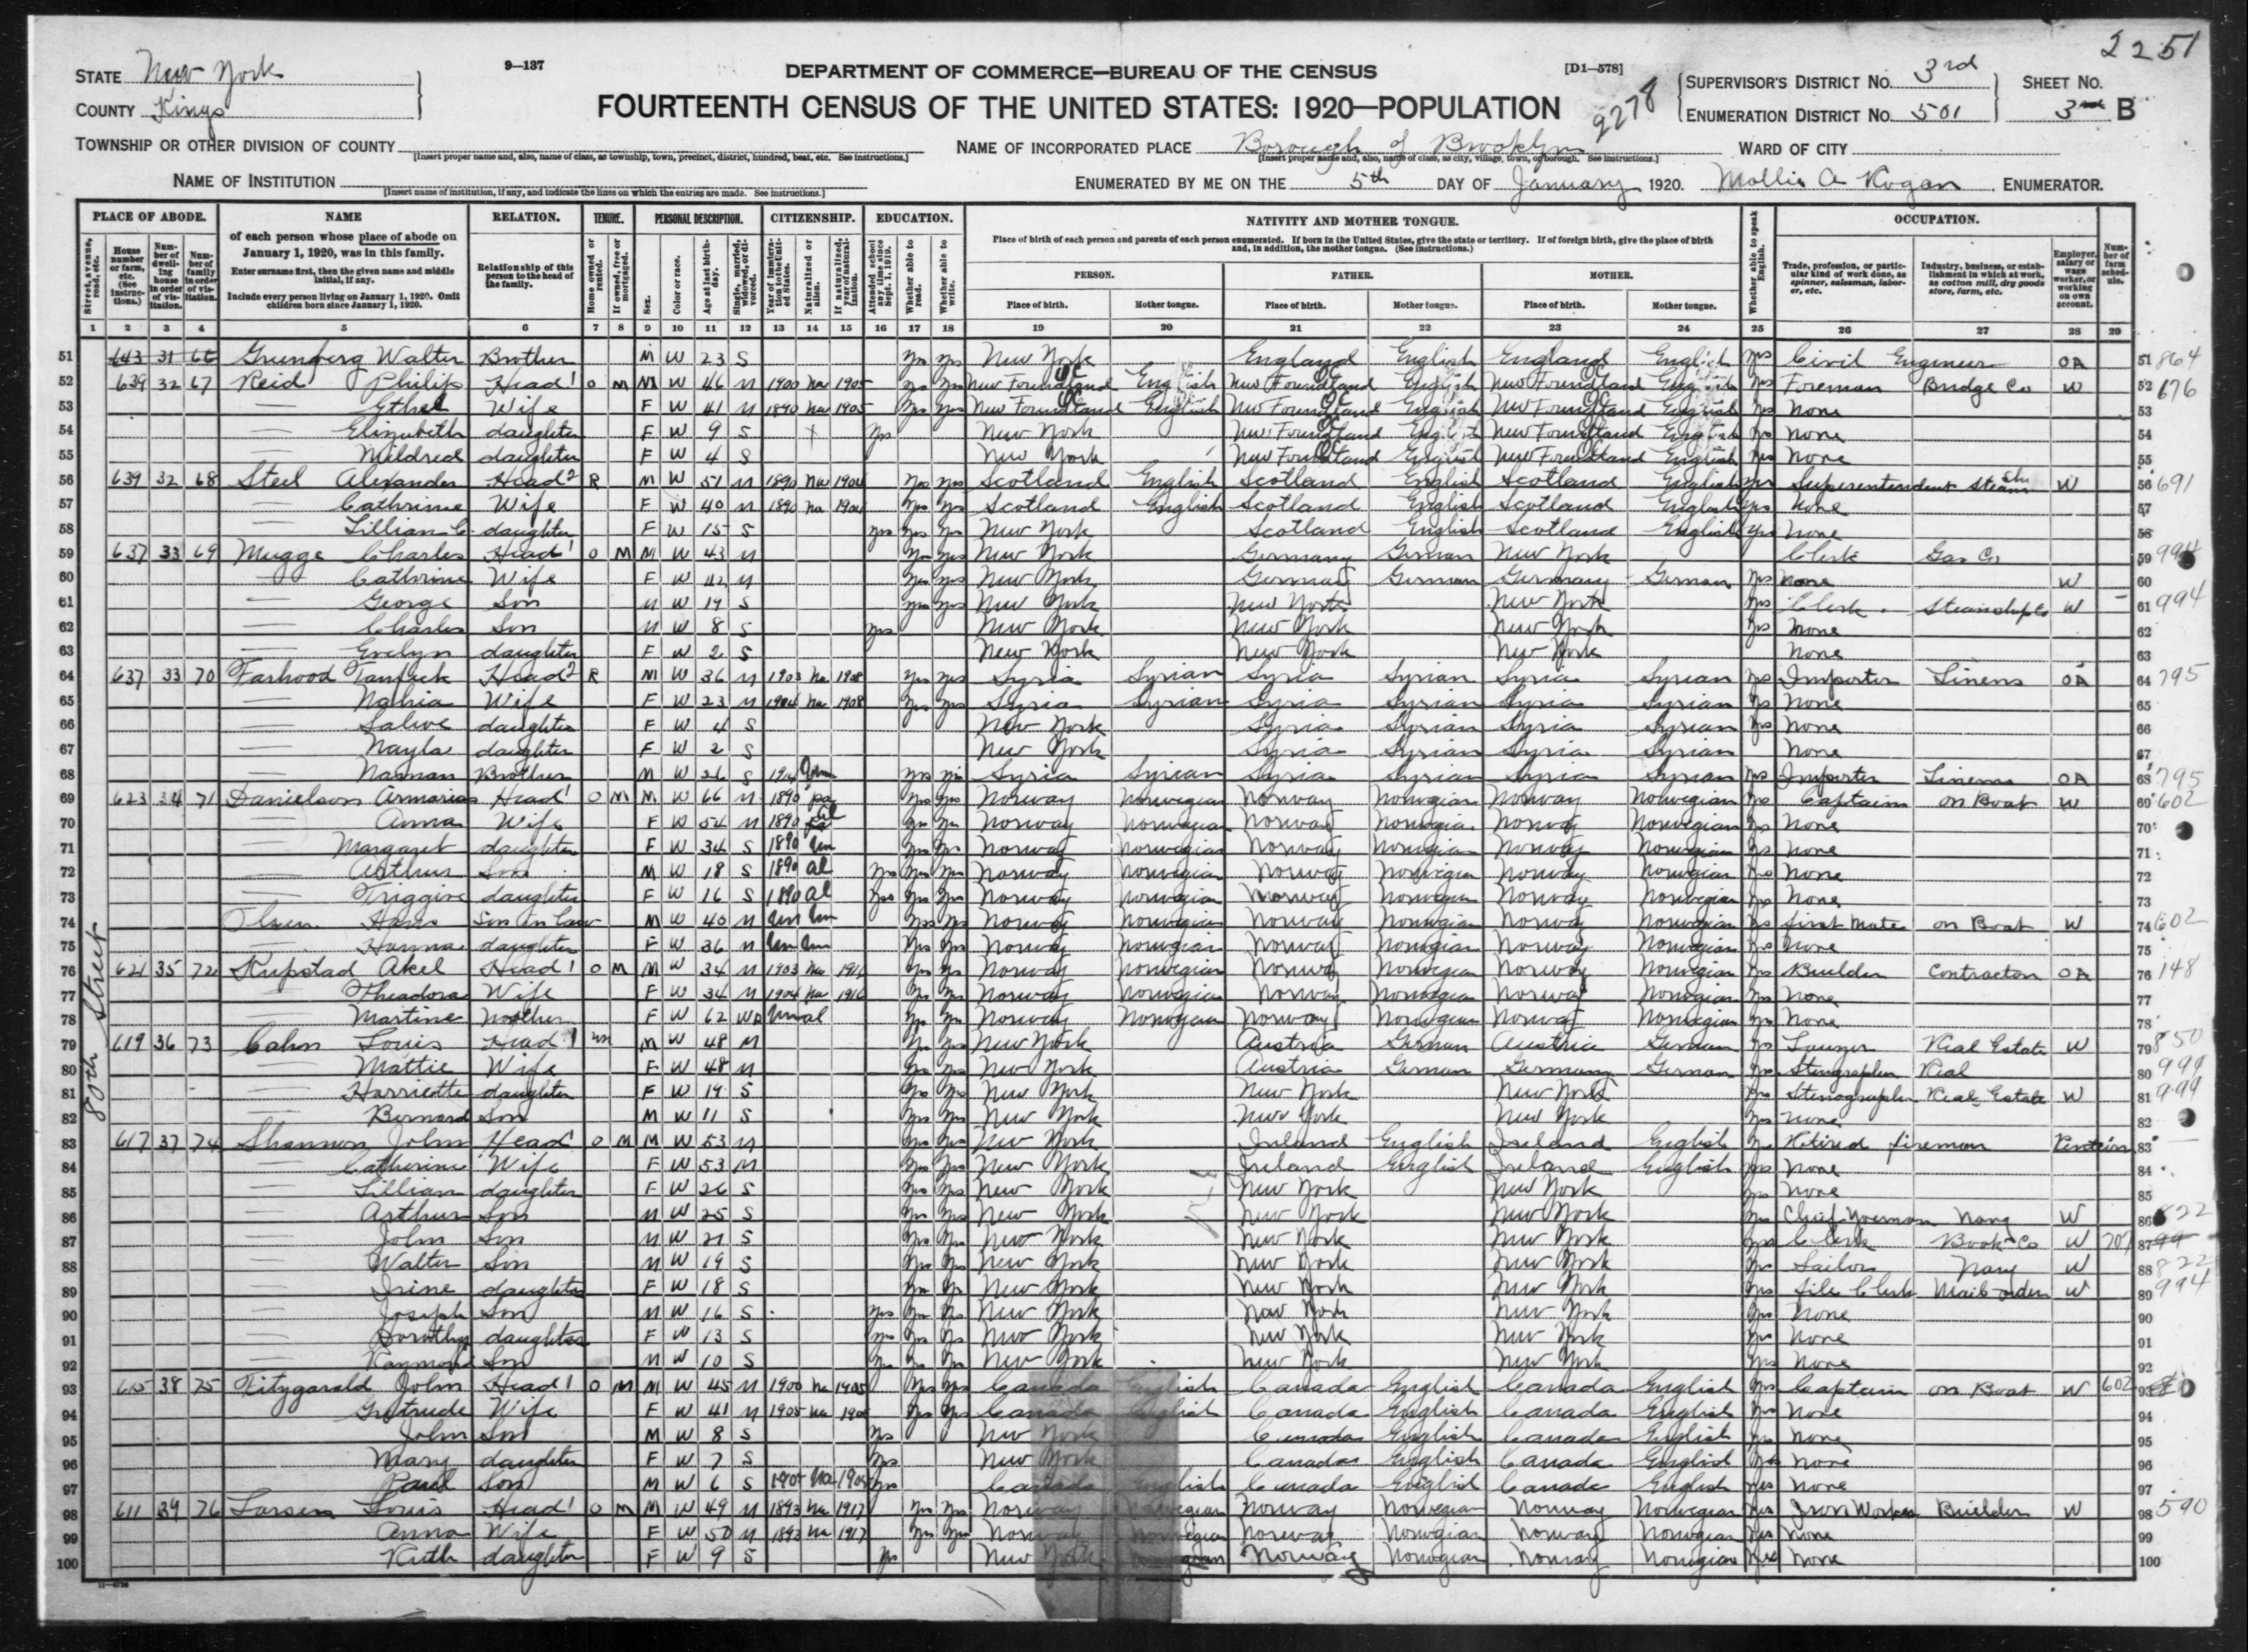 New York: KINGS County, Enumeration District 501, Sheet No. 3B